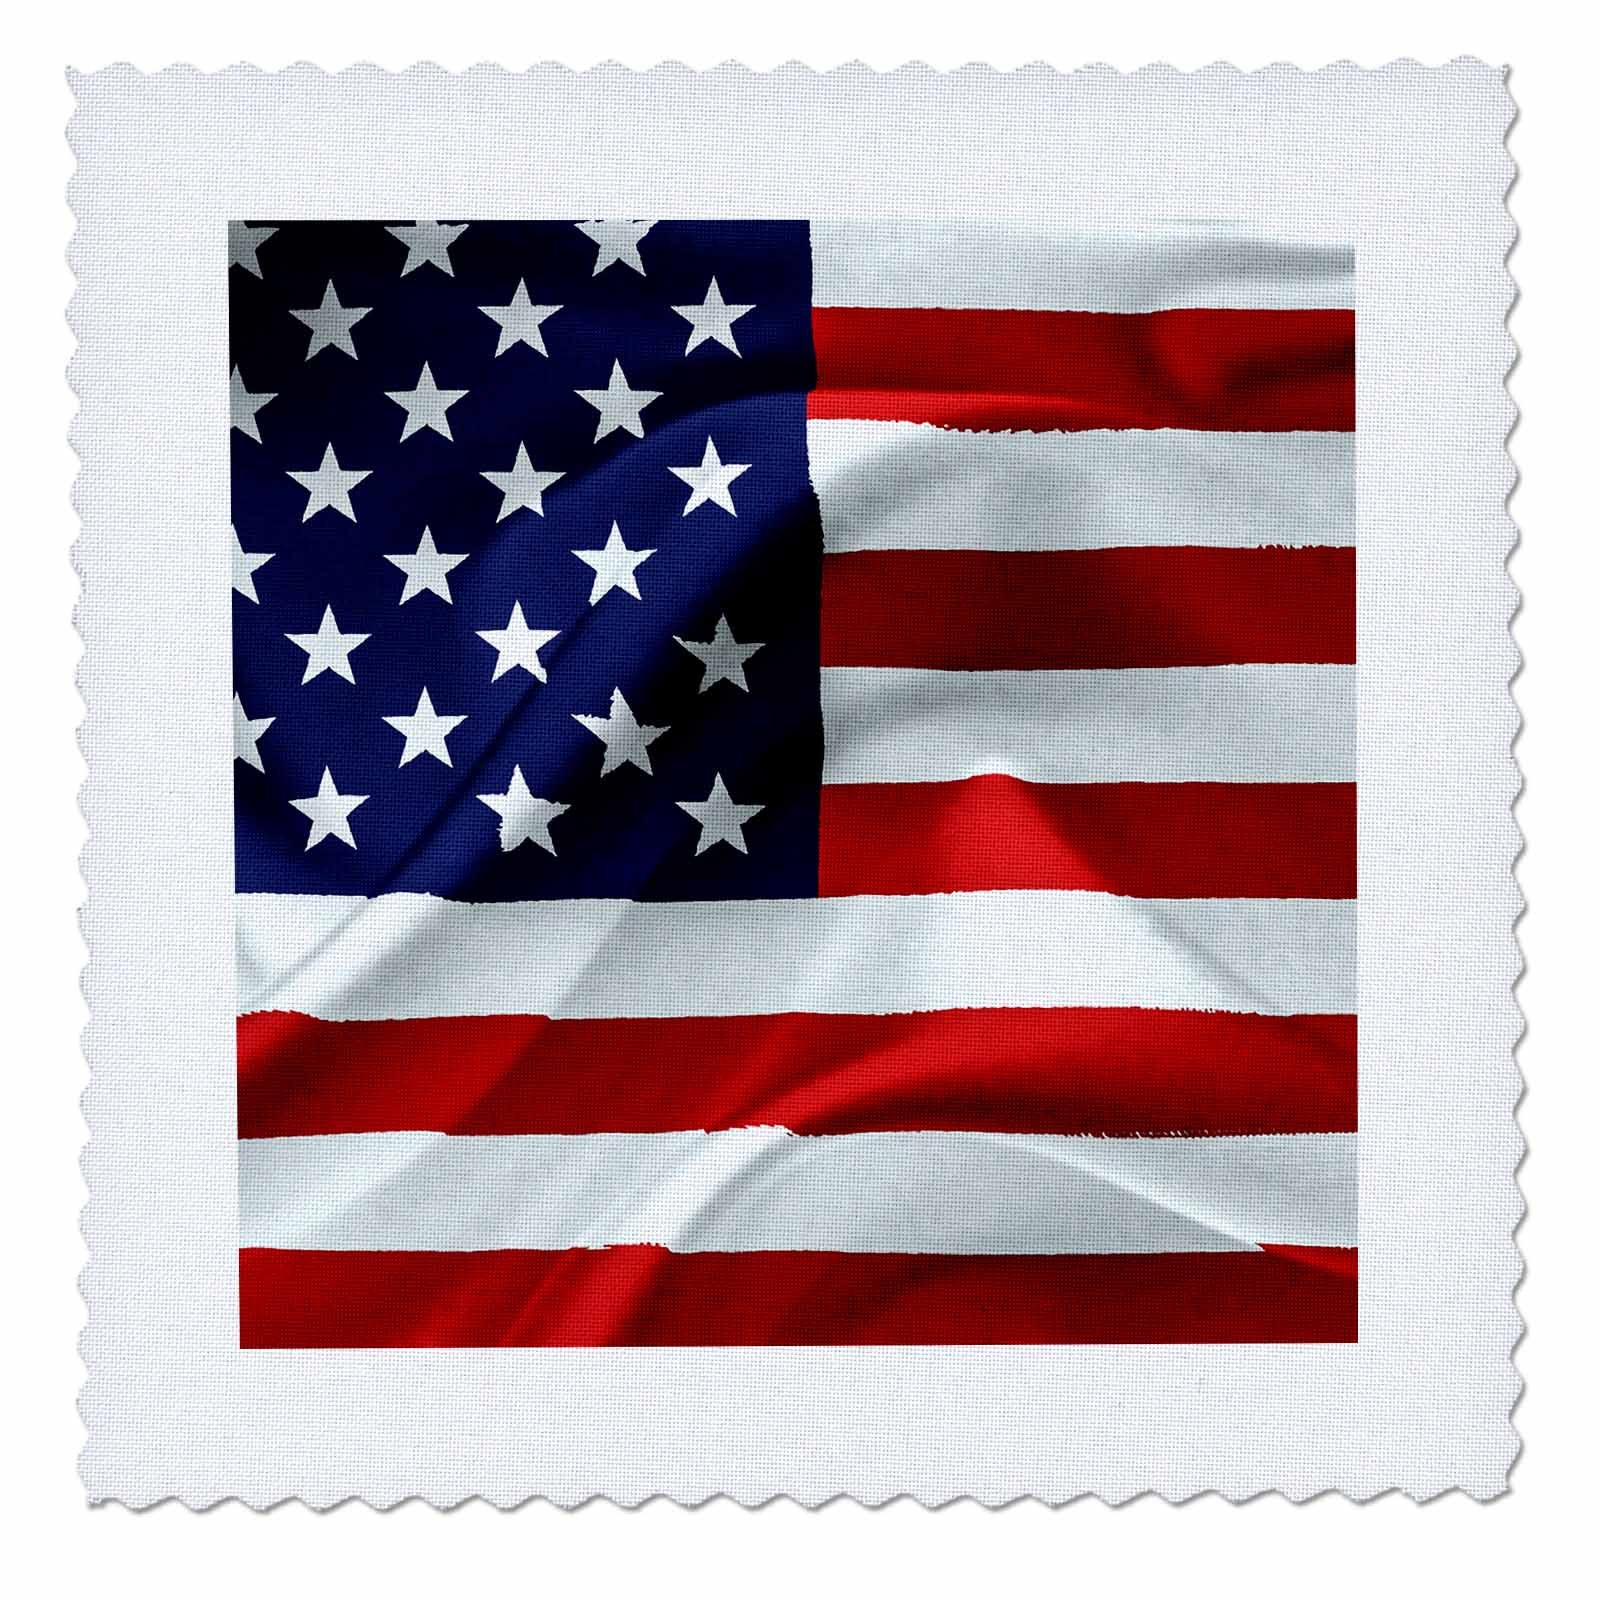 3dRose Alexis Design - America - Flag of the United States Of America. Stars to the left - 14x14 inch quilt square (qs_270543_5) by 3dRose